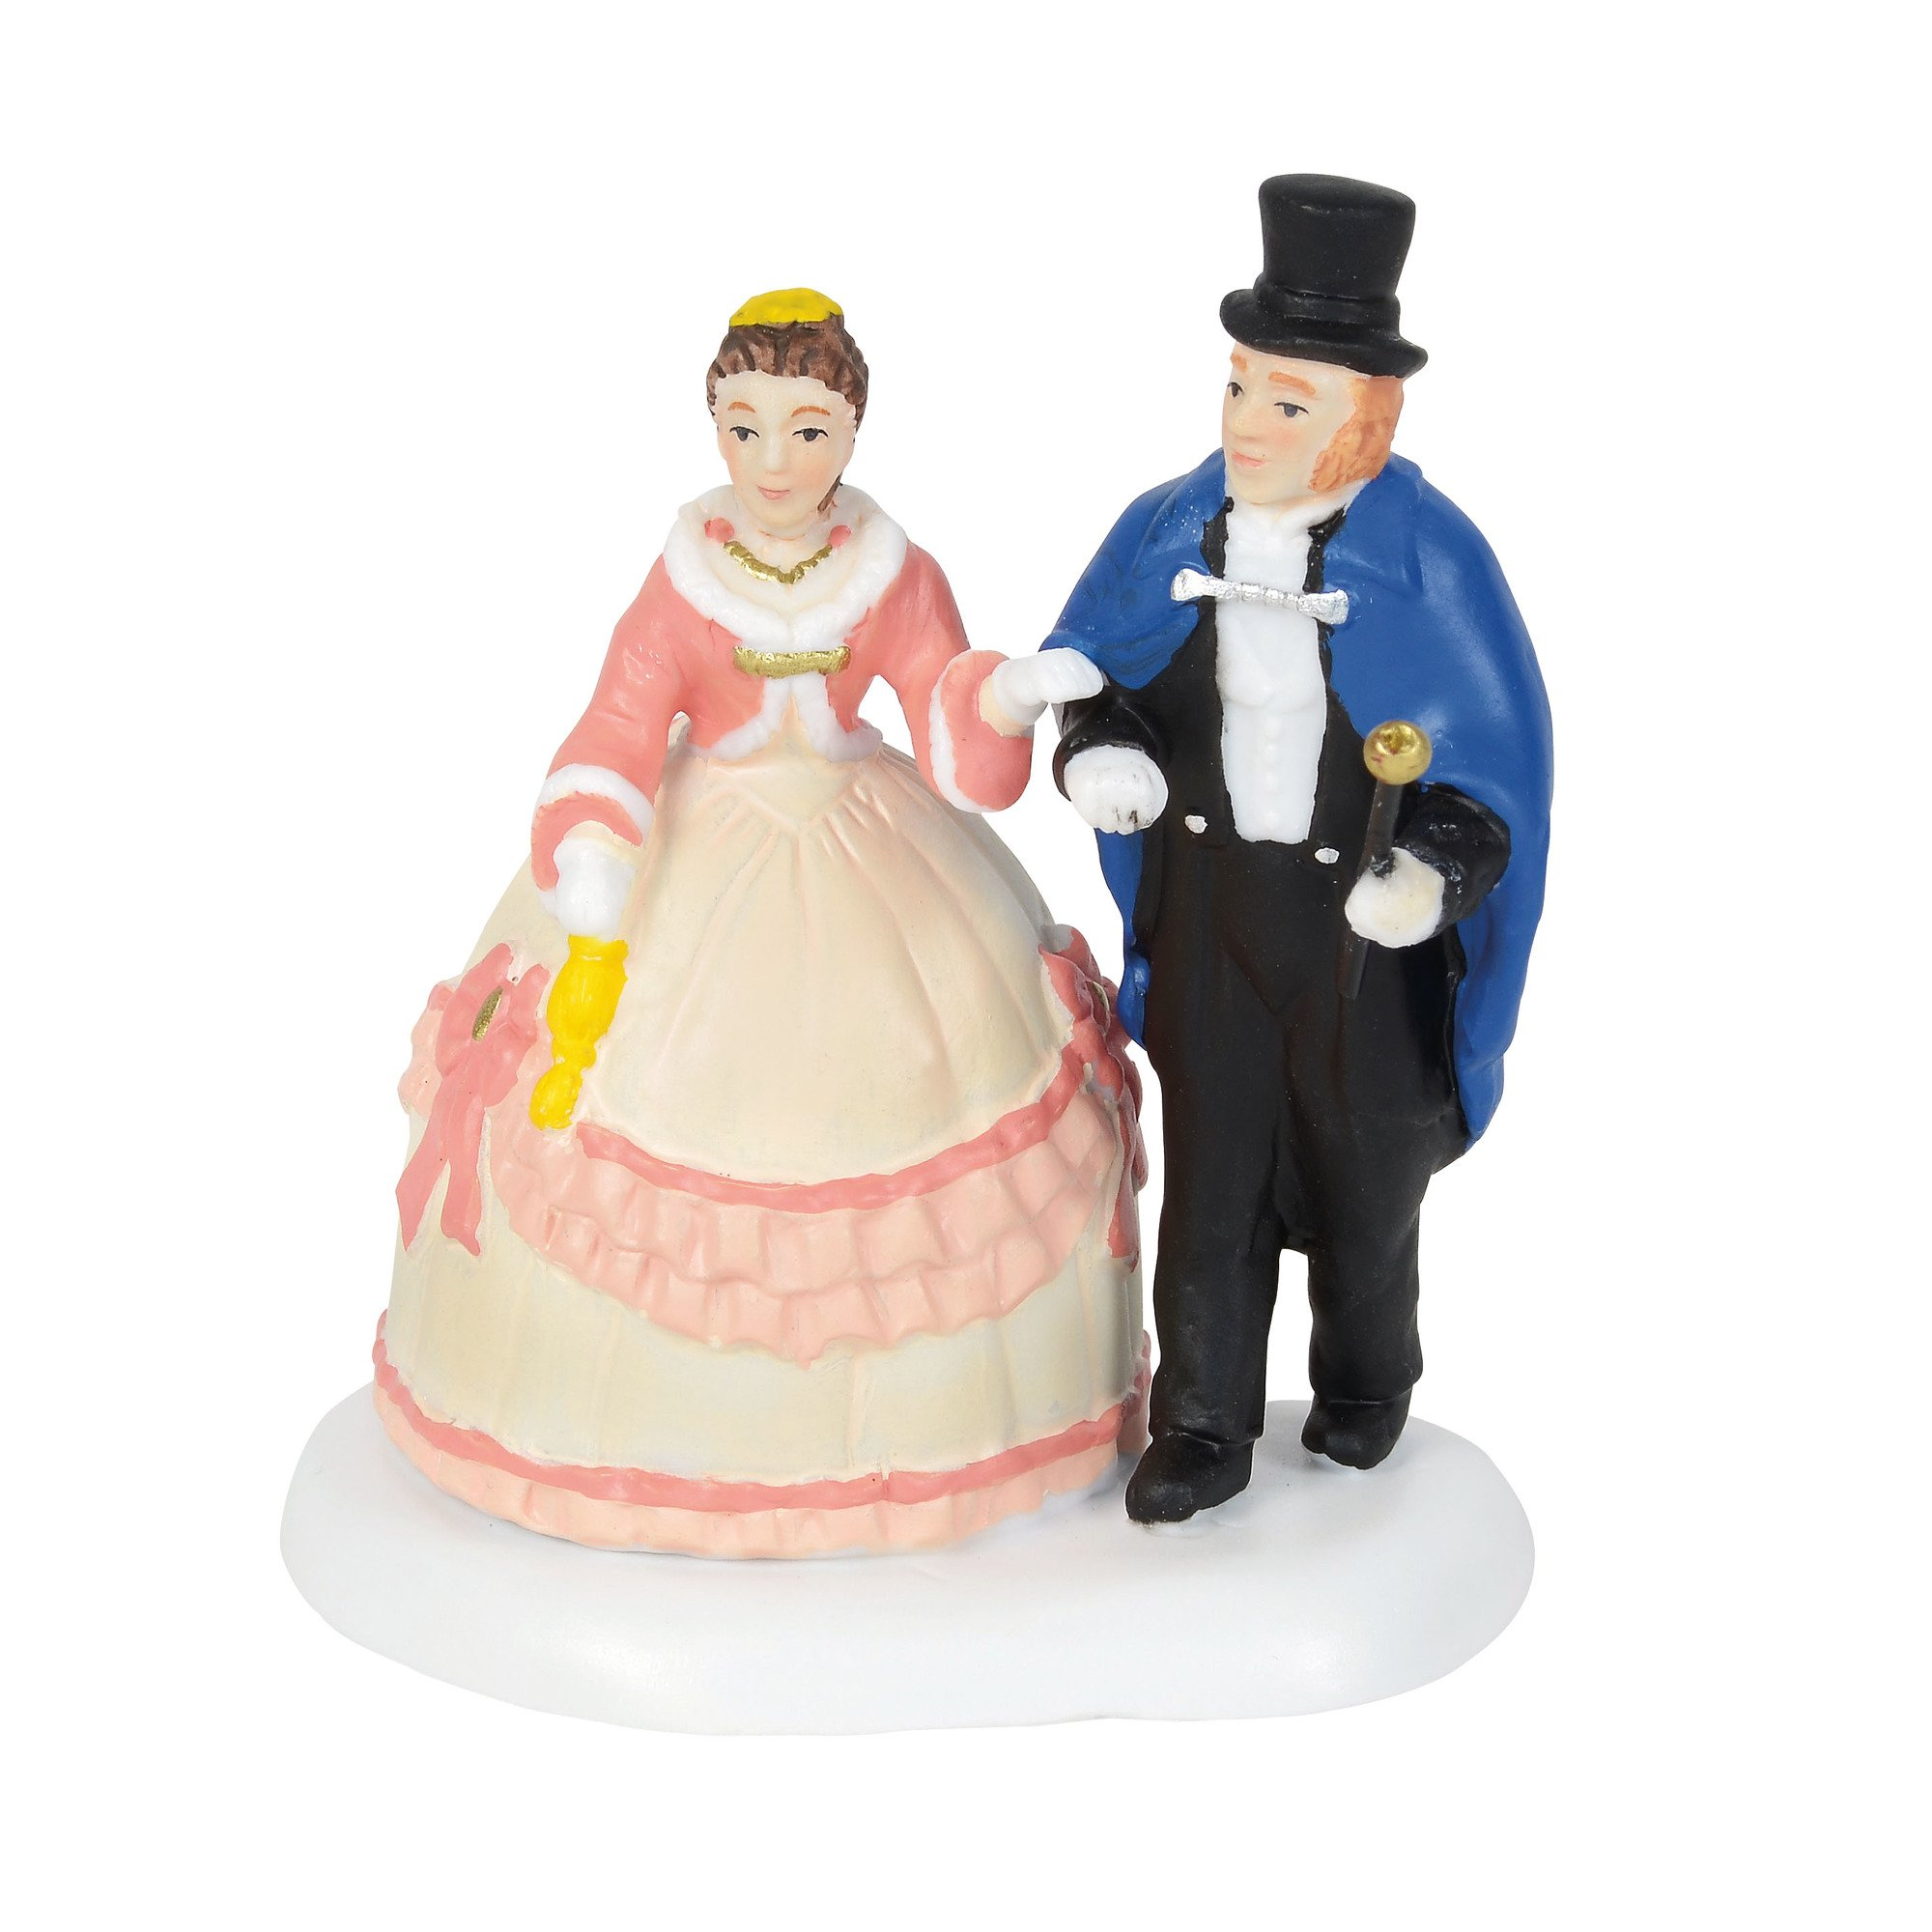 Department 56 Dickens Village Accessories an Elegant Evening Out Figurine, 2.75'', Multicolor